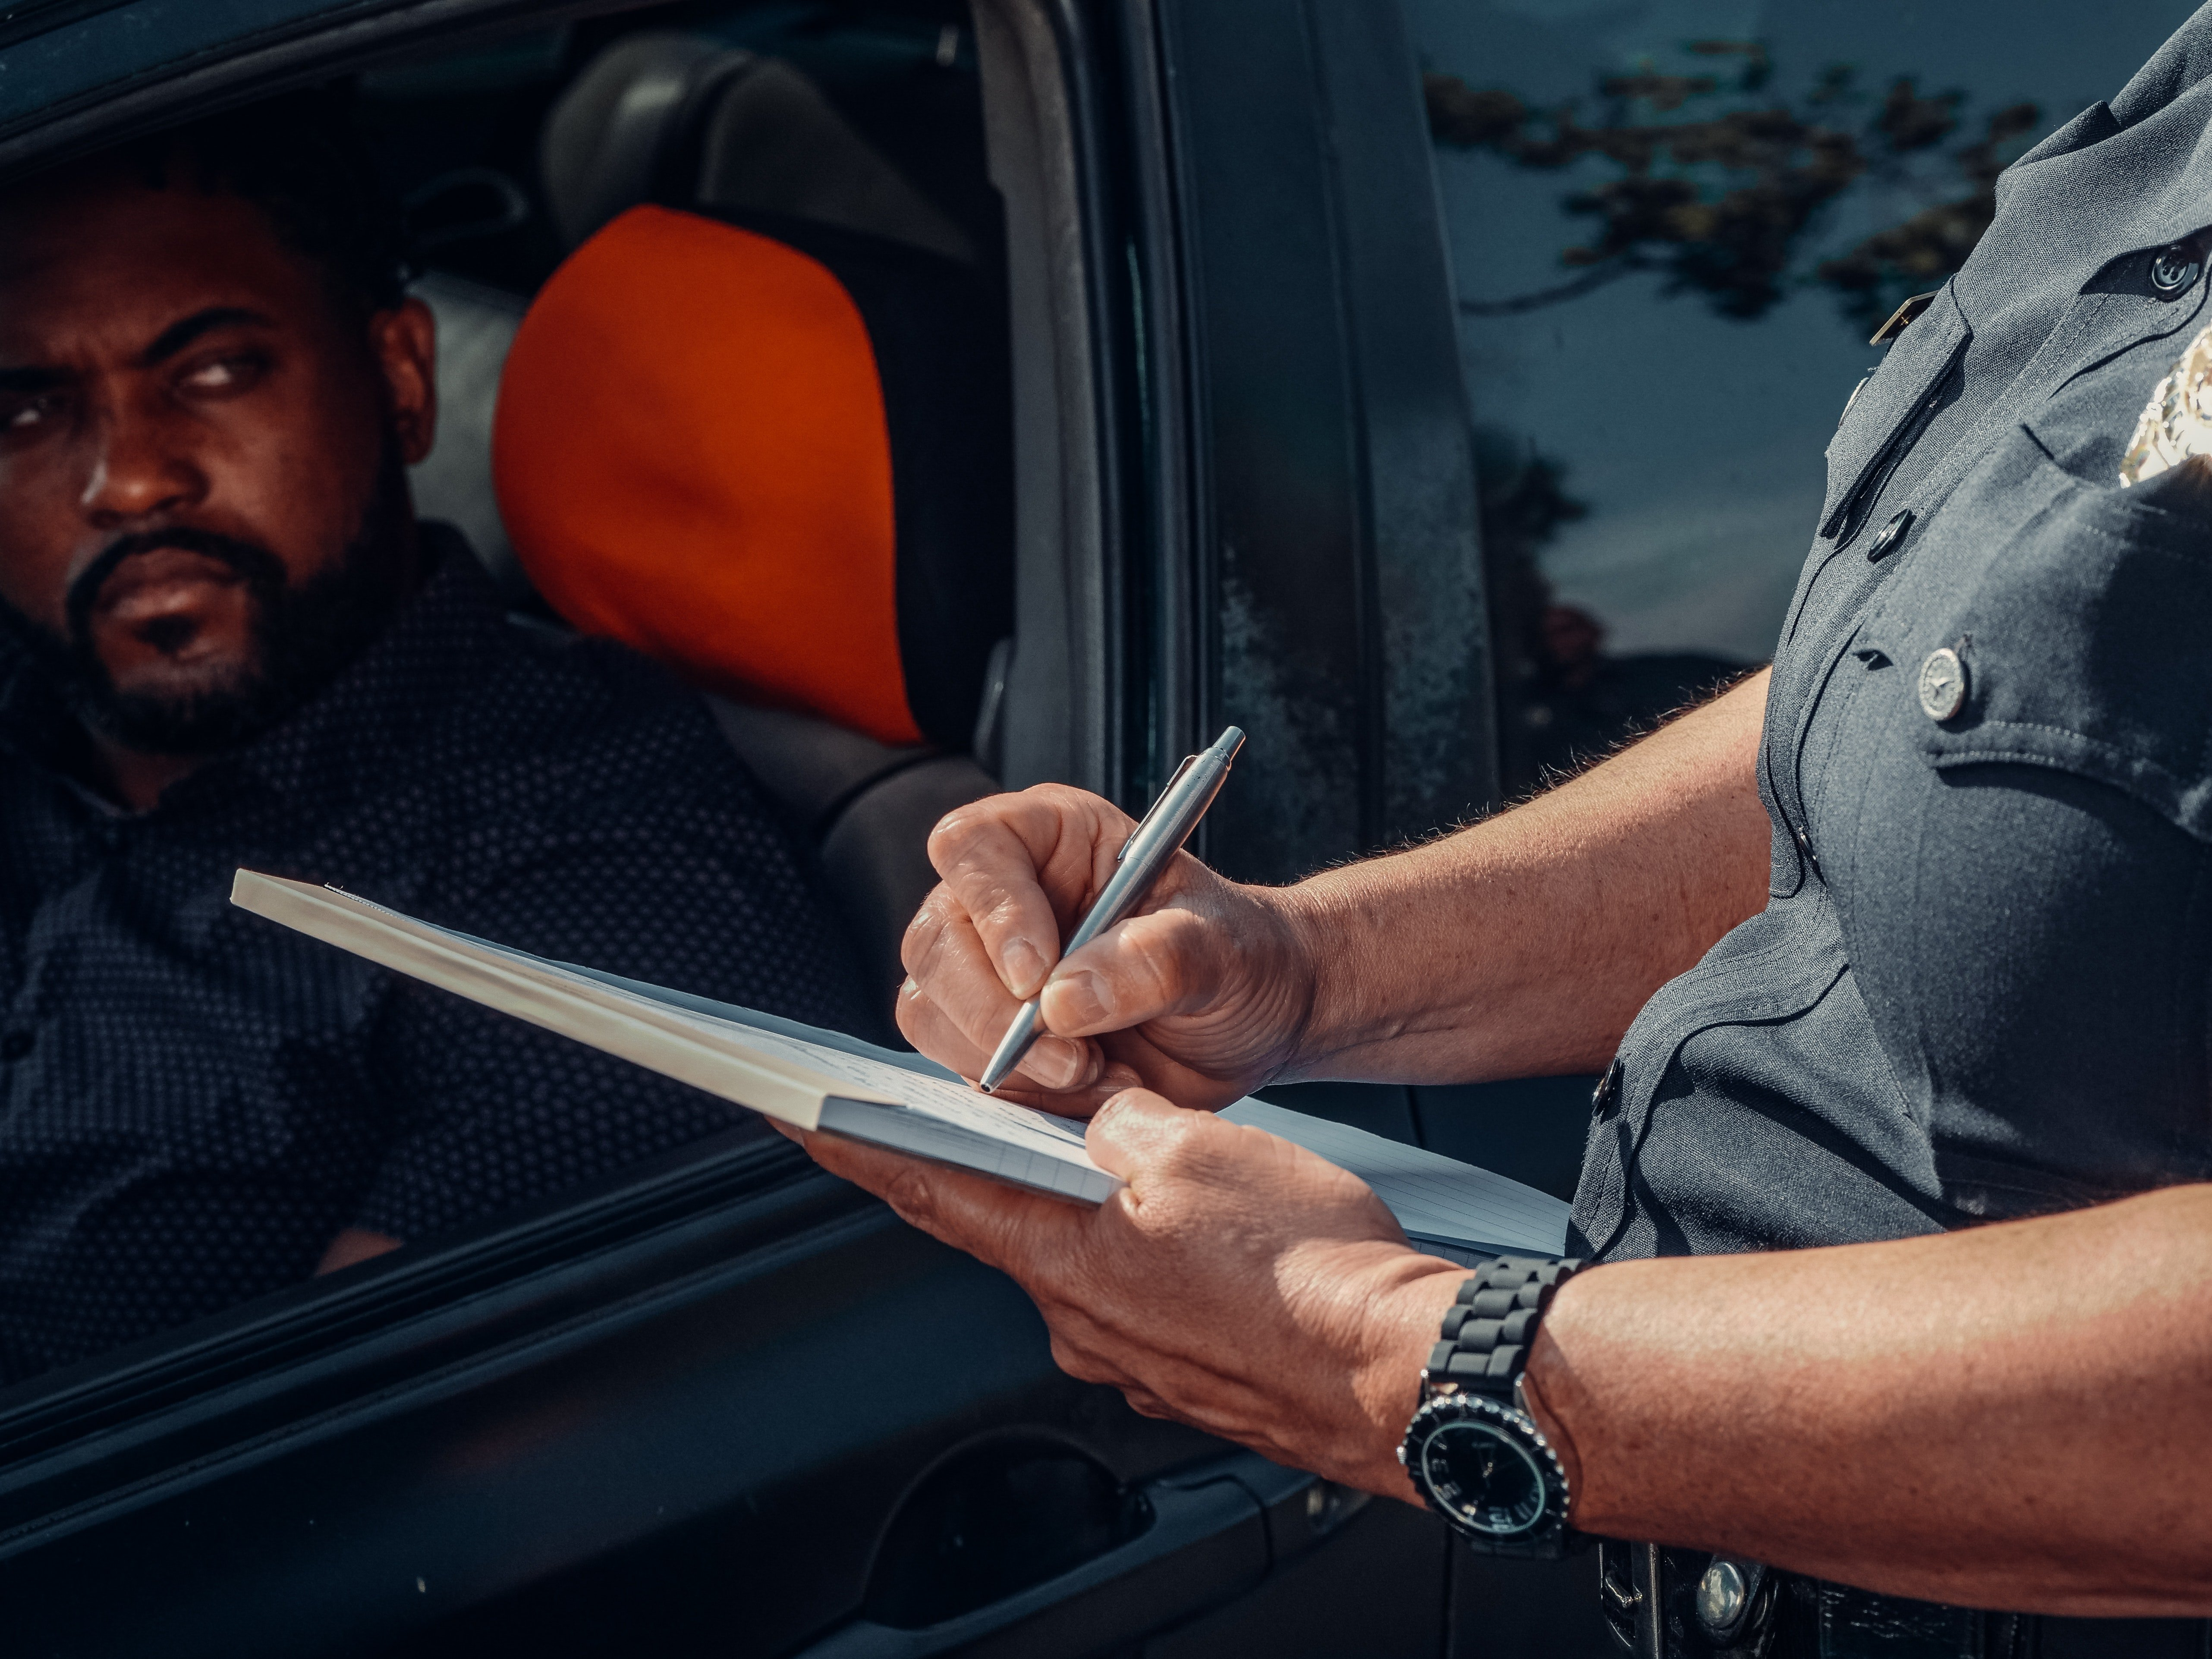 The police officer writing a ticket for the driver | Photo: Pexels/Kindel Media